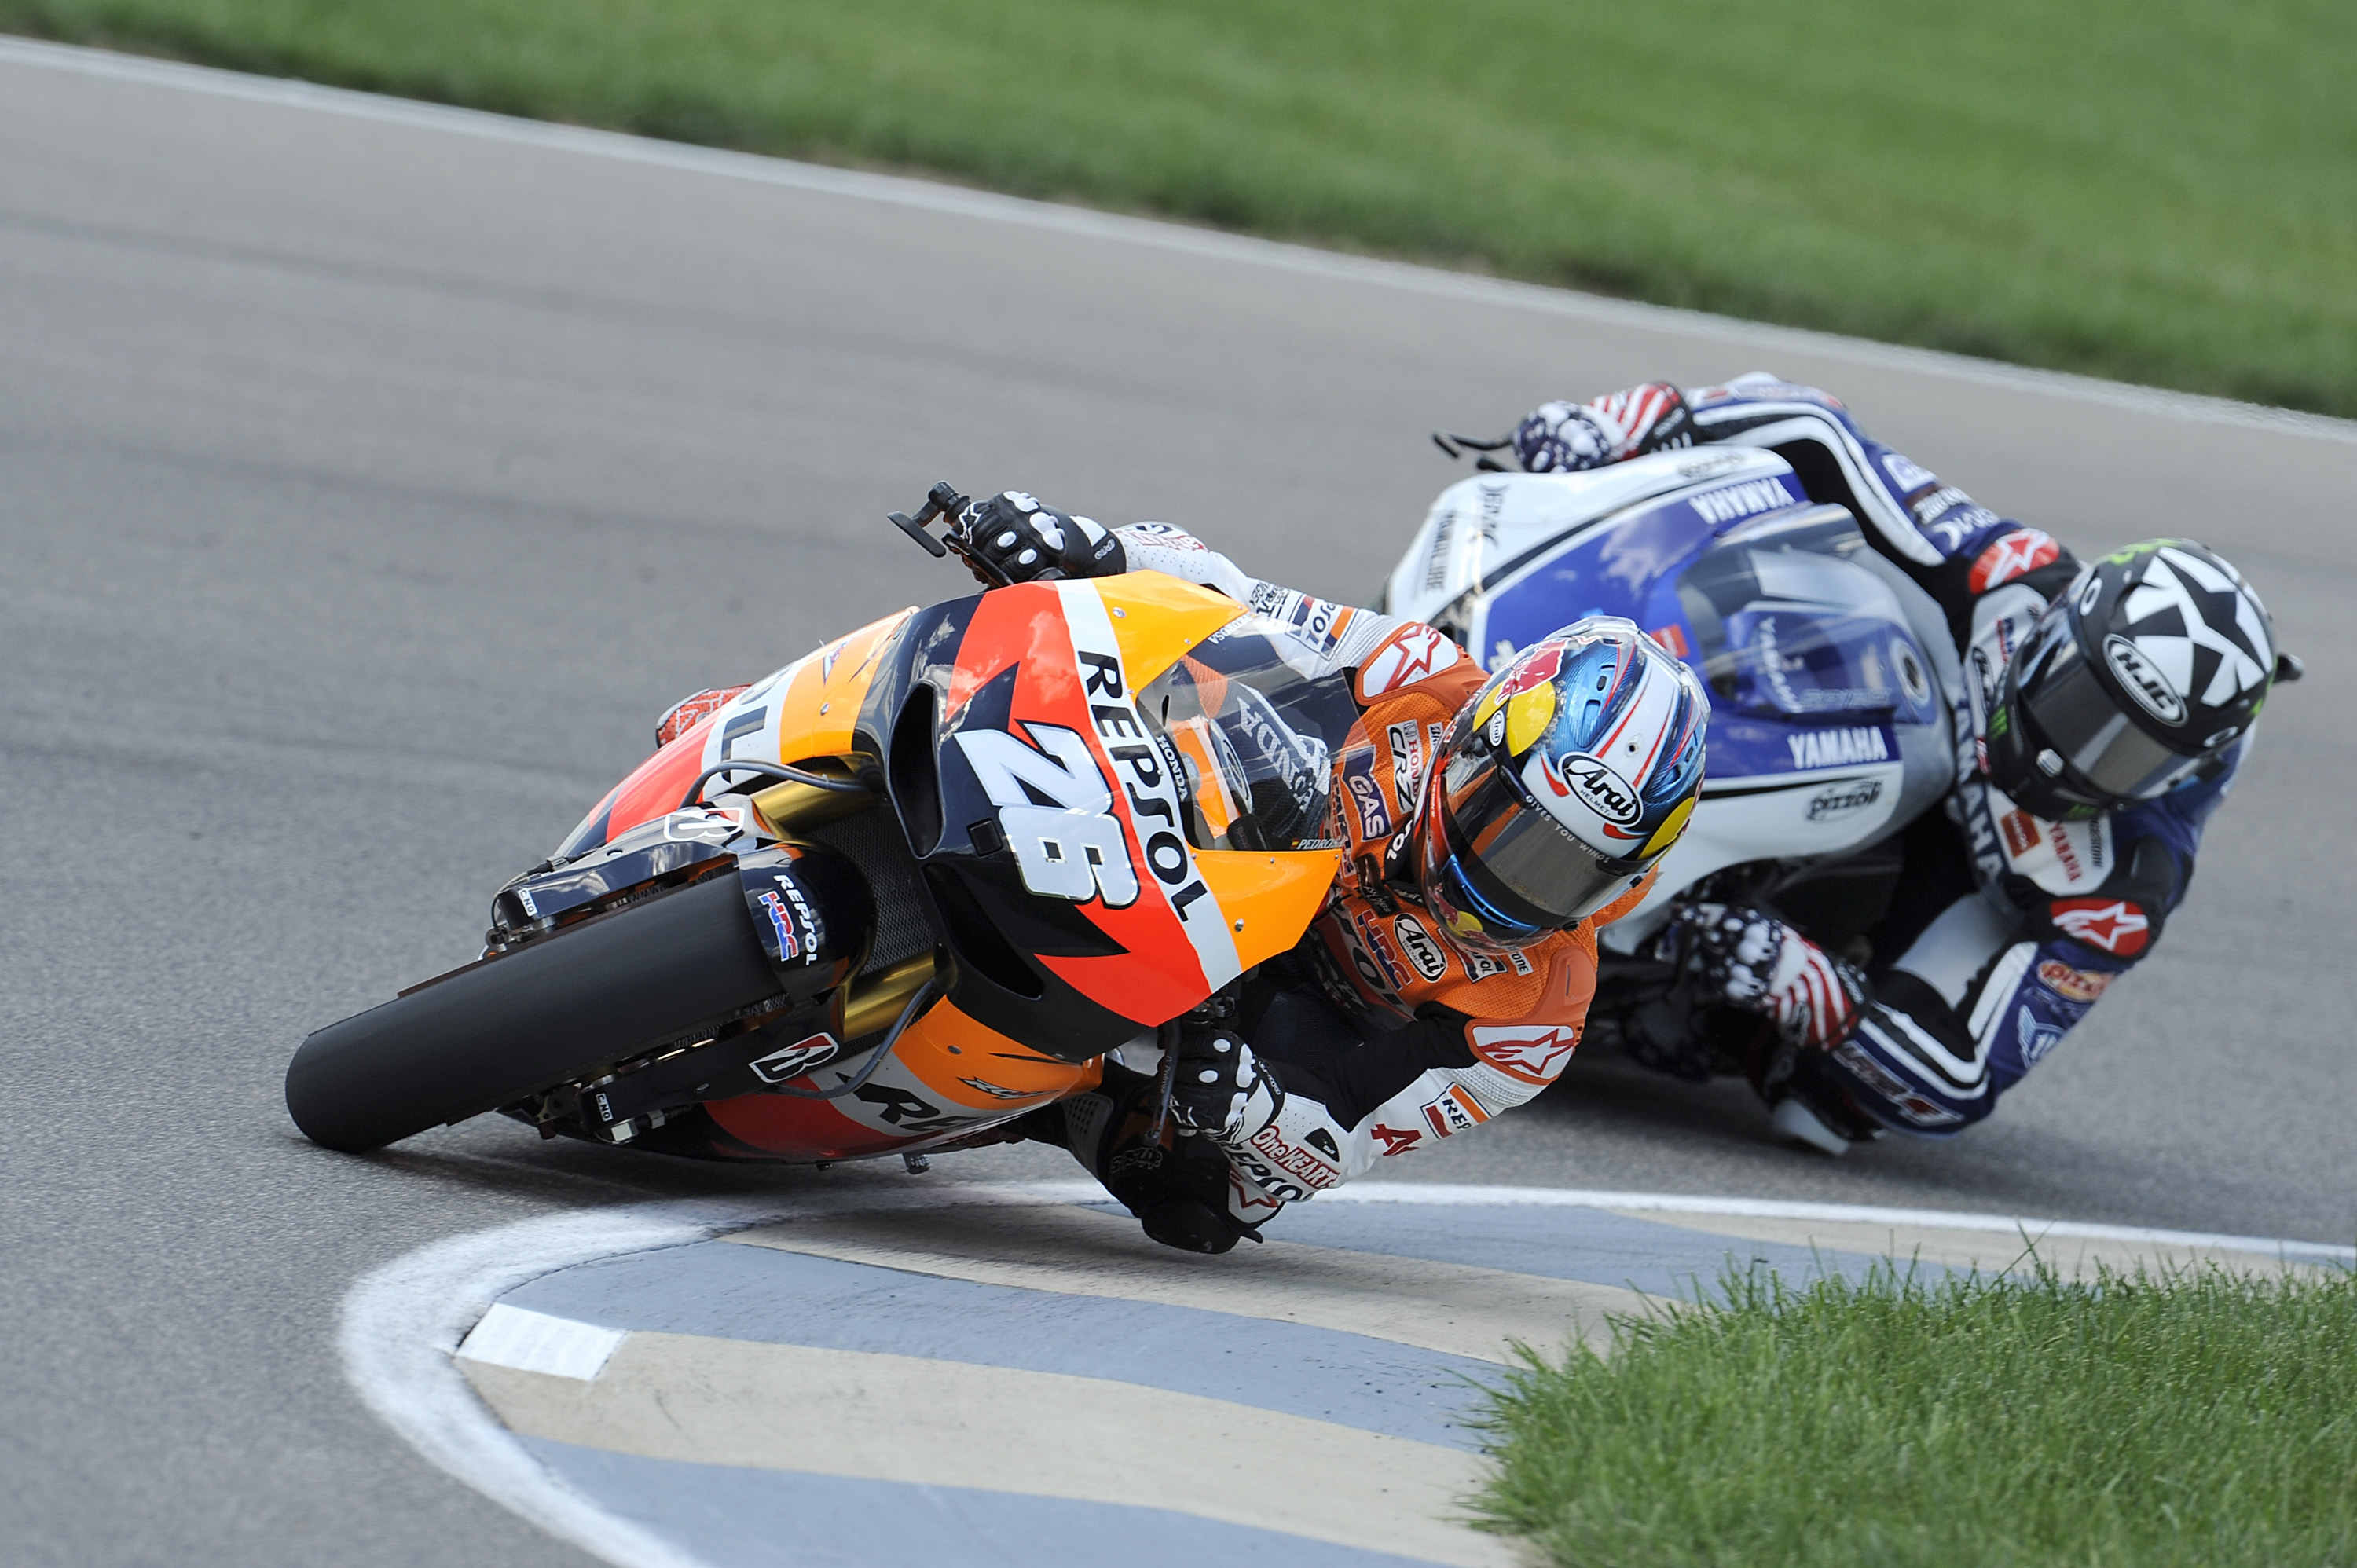 Pedrosa powers home from pole to win at Indianapolis